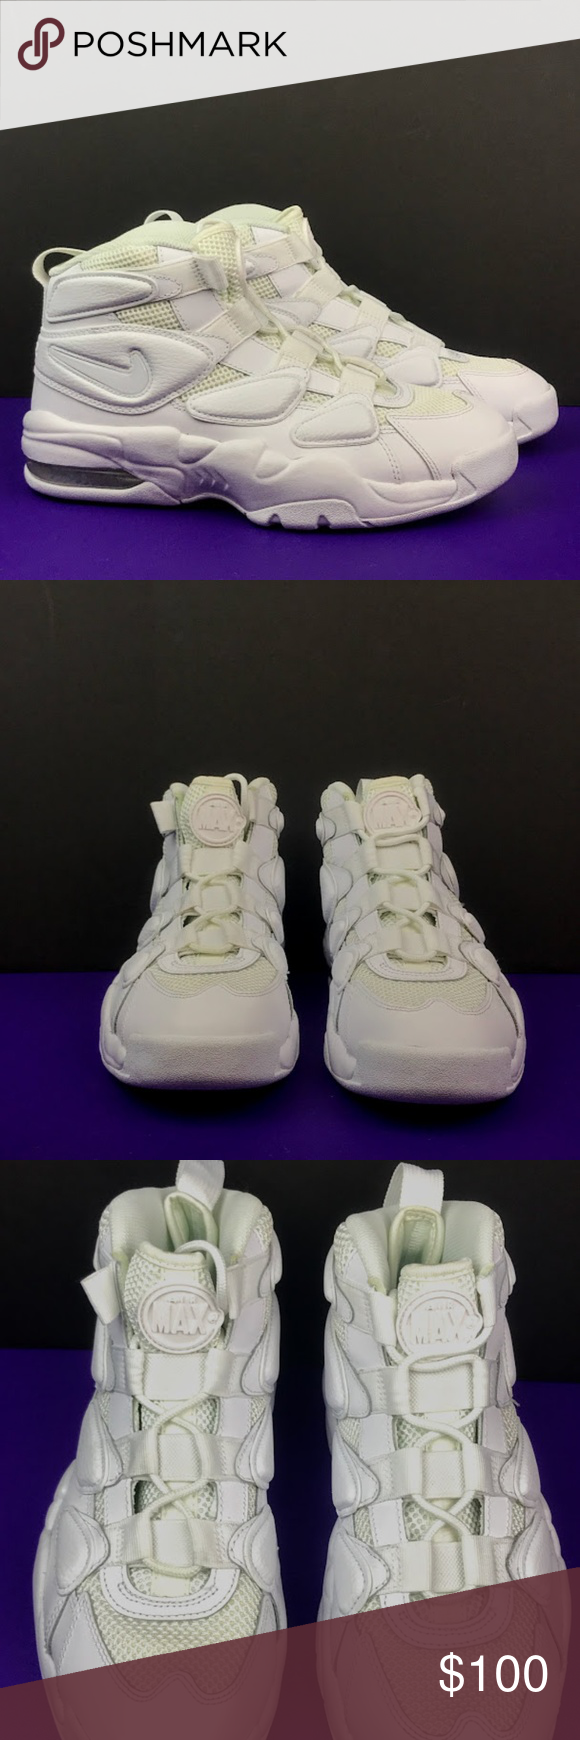 new style b710c be46a NIKE AIR MAX 2 UPTEMPO 94 basketball shoes Size 8 NIKE AIR MAX 2 UPTEMPO